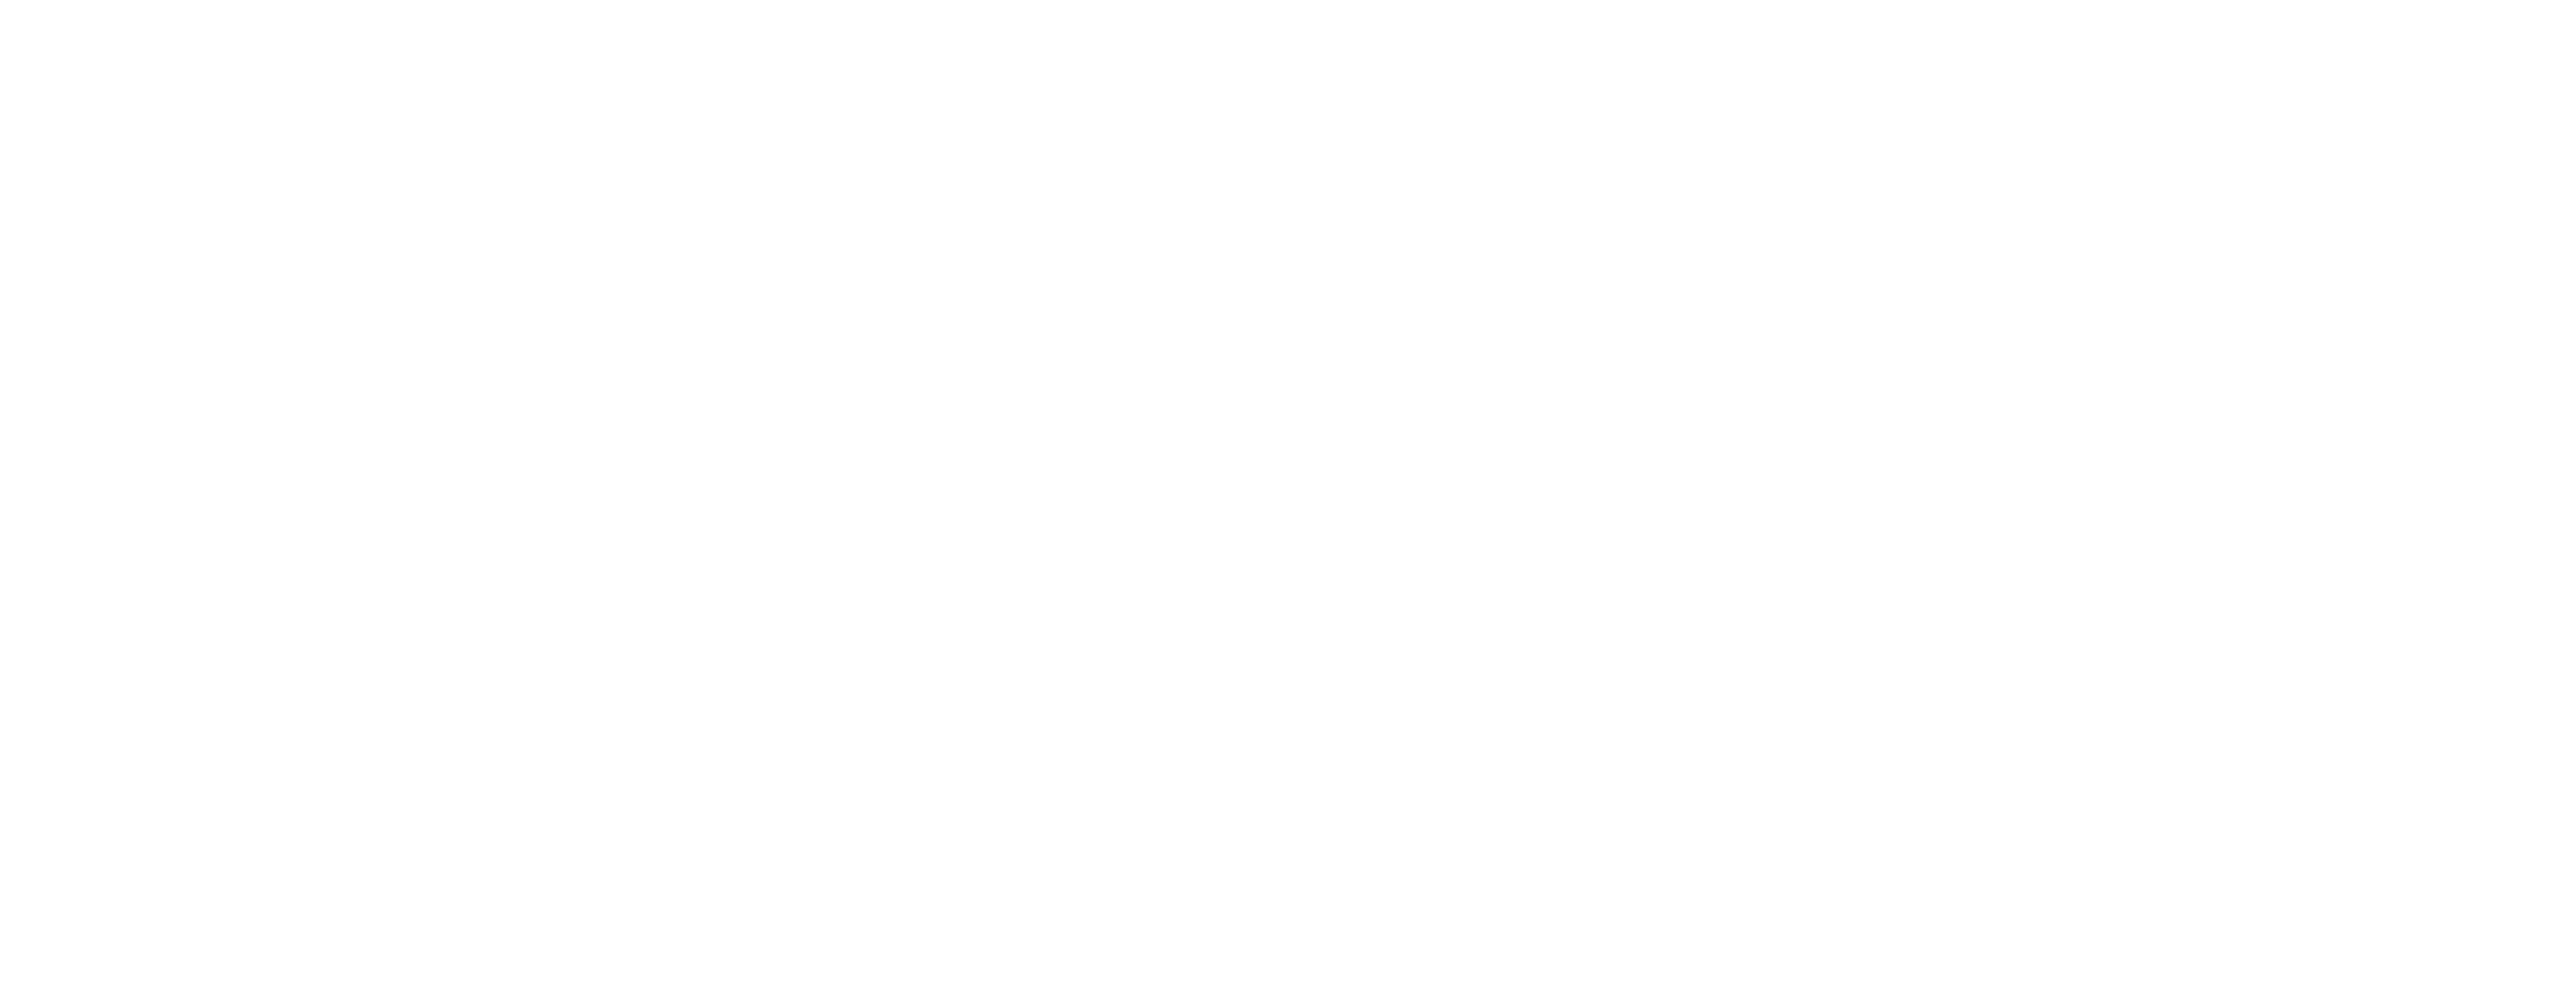 Jones Piano Services | Lexington, KY